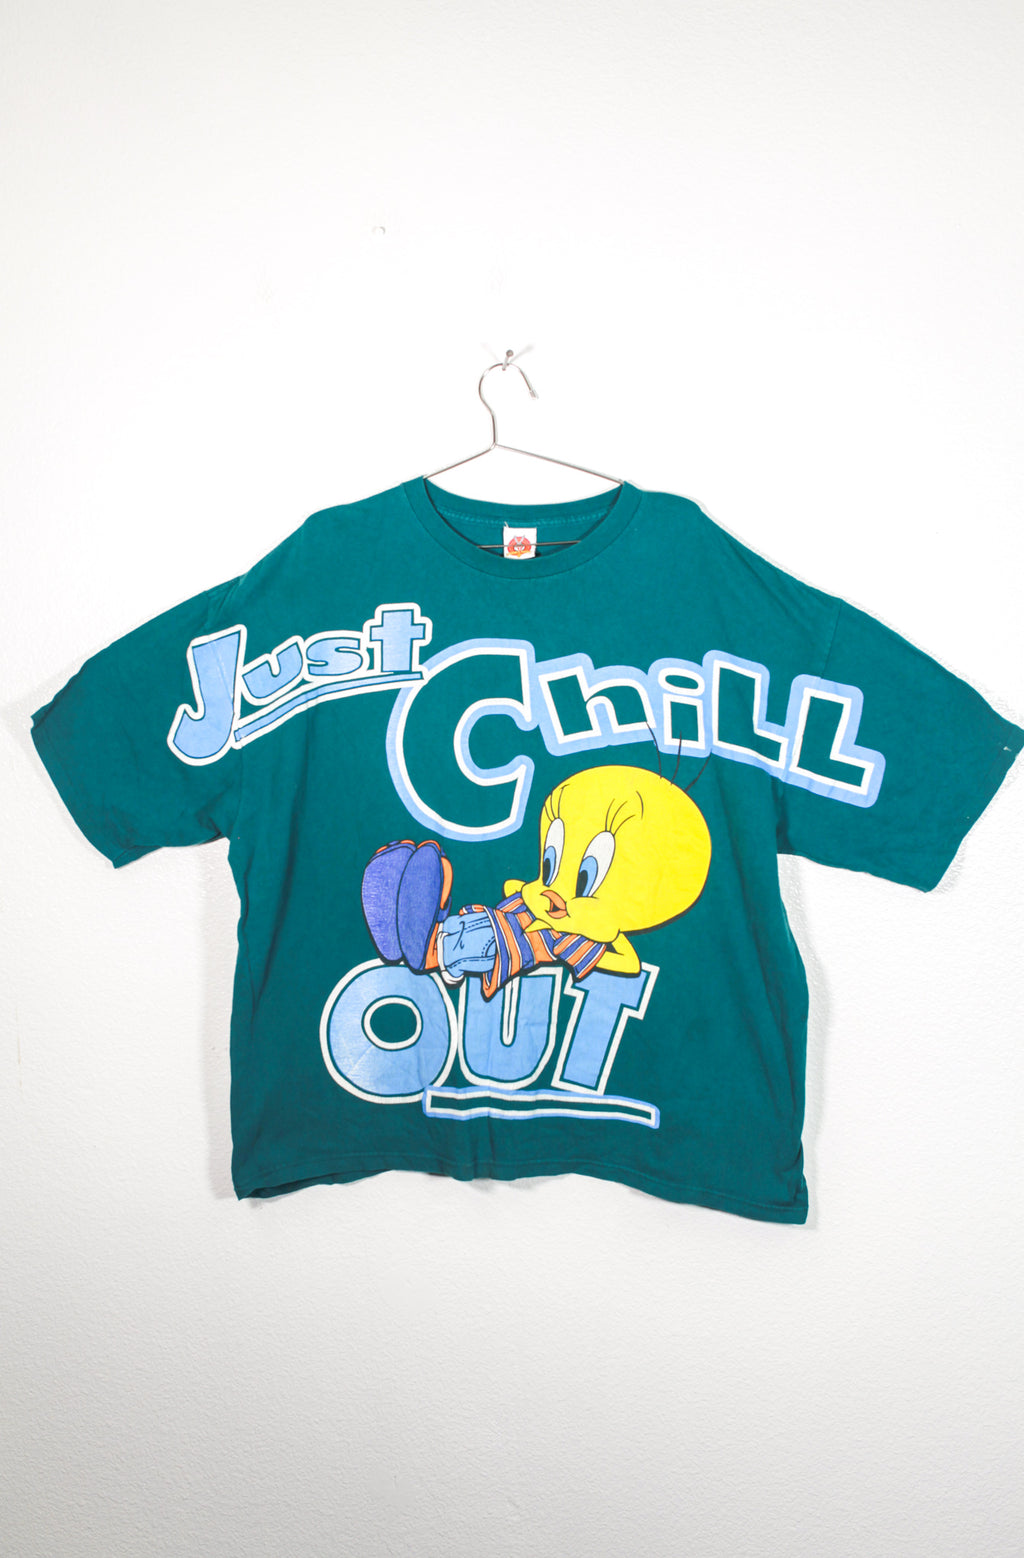 Vintage Chill Out Tweetie Tee